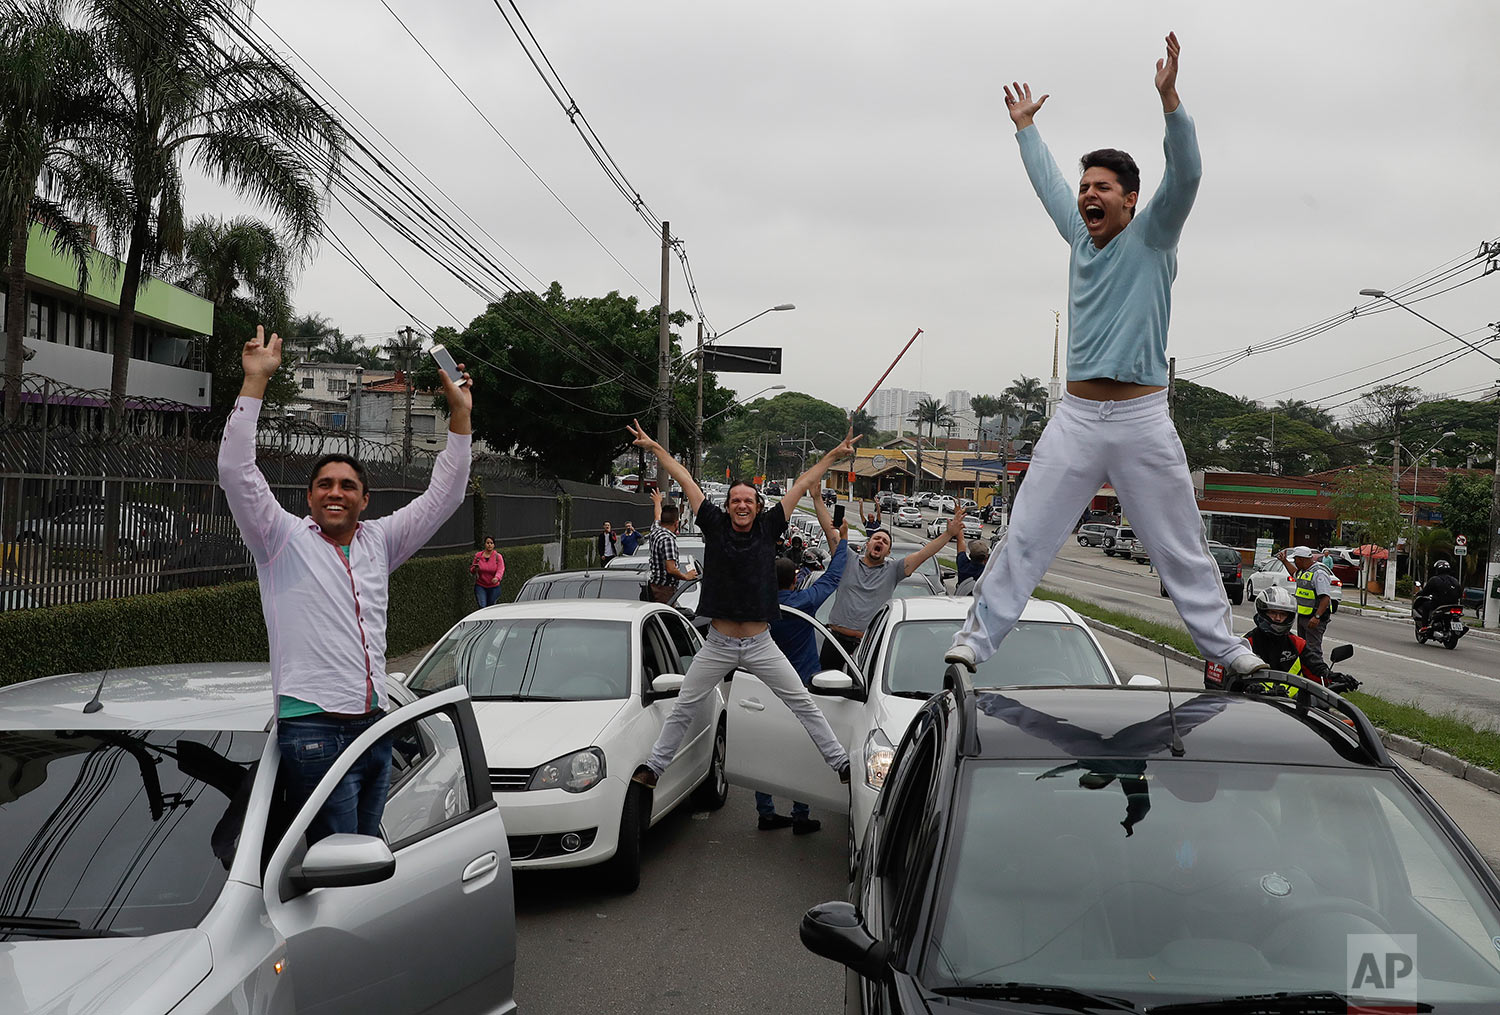 Brazil Ride Sharing Legislation